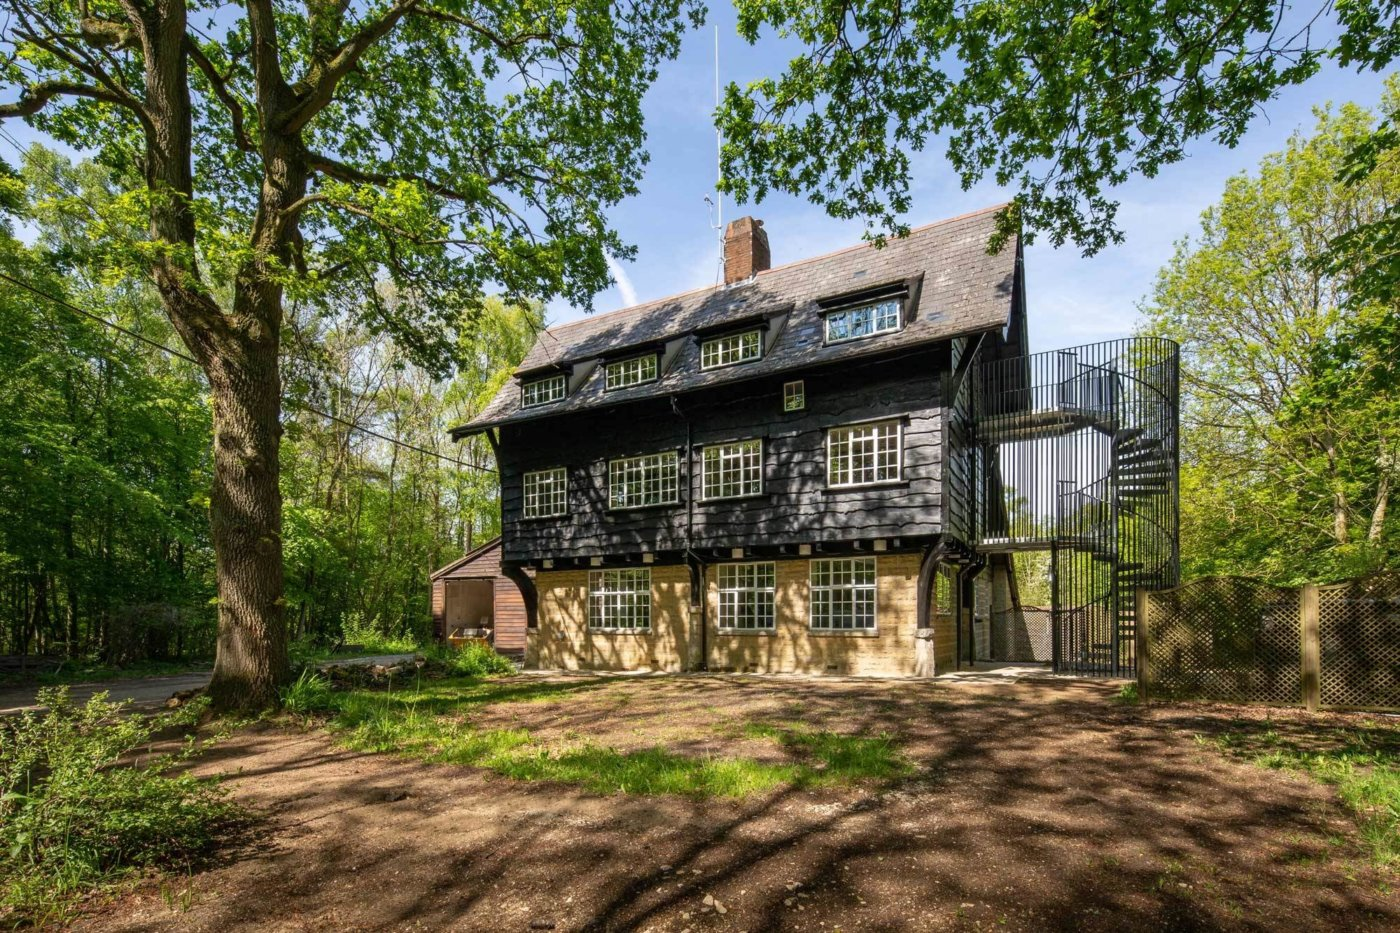 The Chalet Wytham Woods